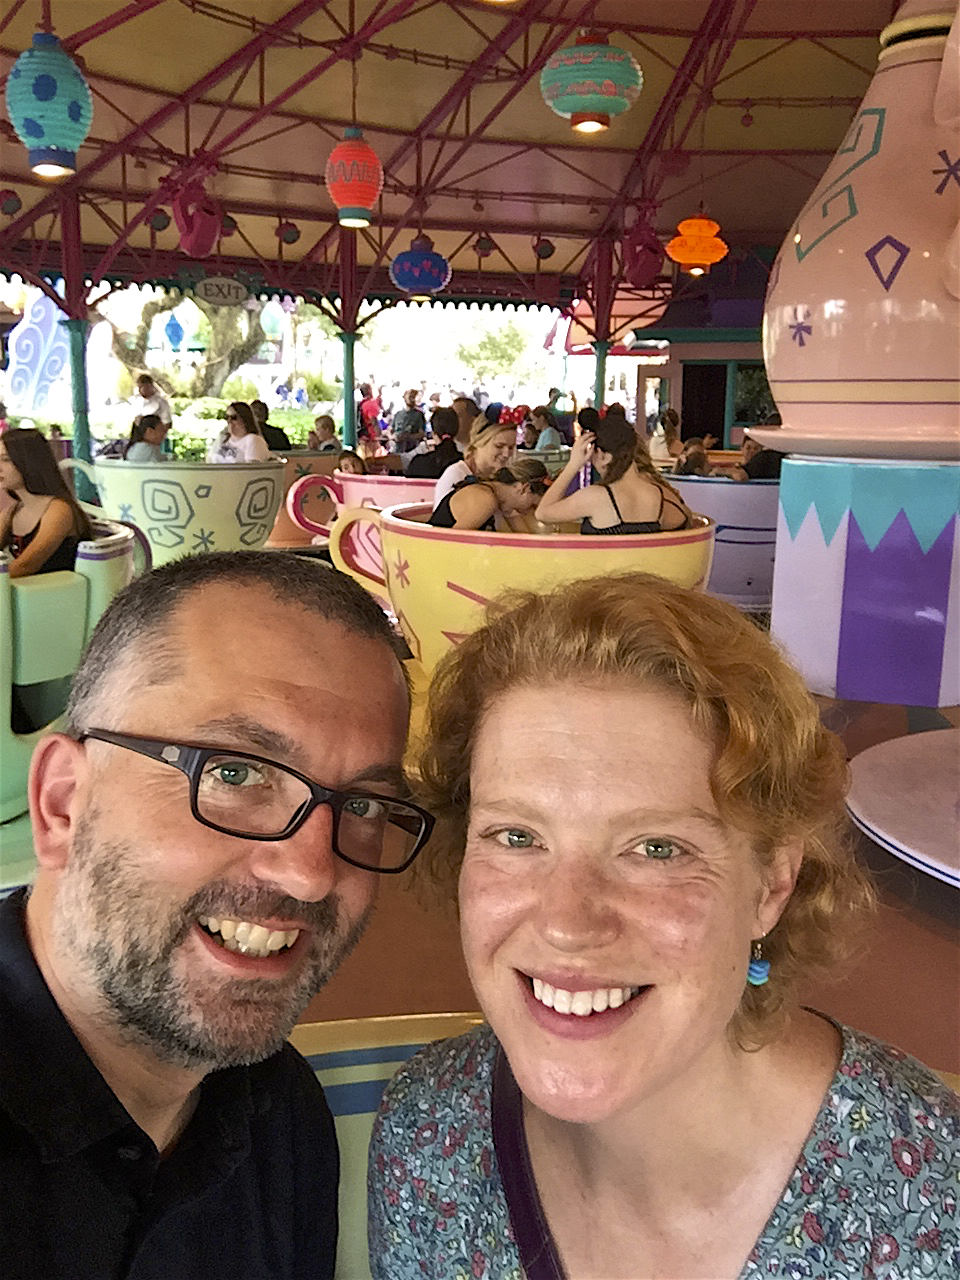 - After a busy but rewarding season with lots of fantastic guests, we enjoyed a well deserved holiday in America. We started off with a family wedding near Boston, then took a road trip south through 11 states, ending with a few days' fun at DisneyWorld!